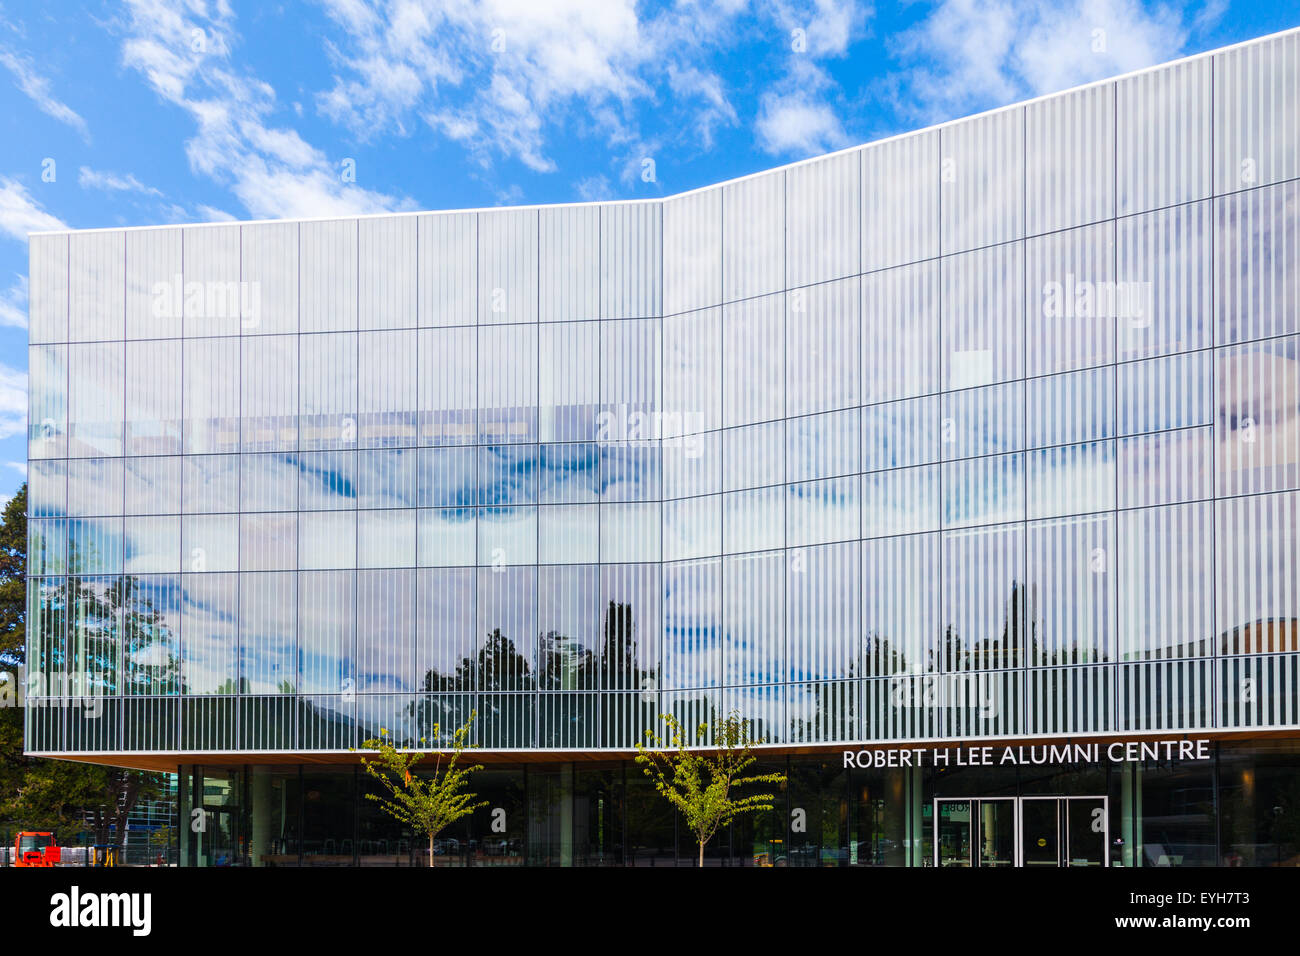 Front exterior of the Robert H Lee Alumni Centre on the campus of UBC in Vancouver, British Columbia, Canada - Stock Image